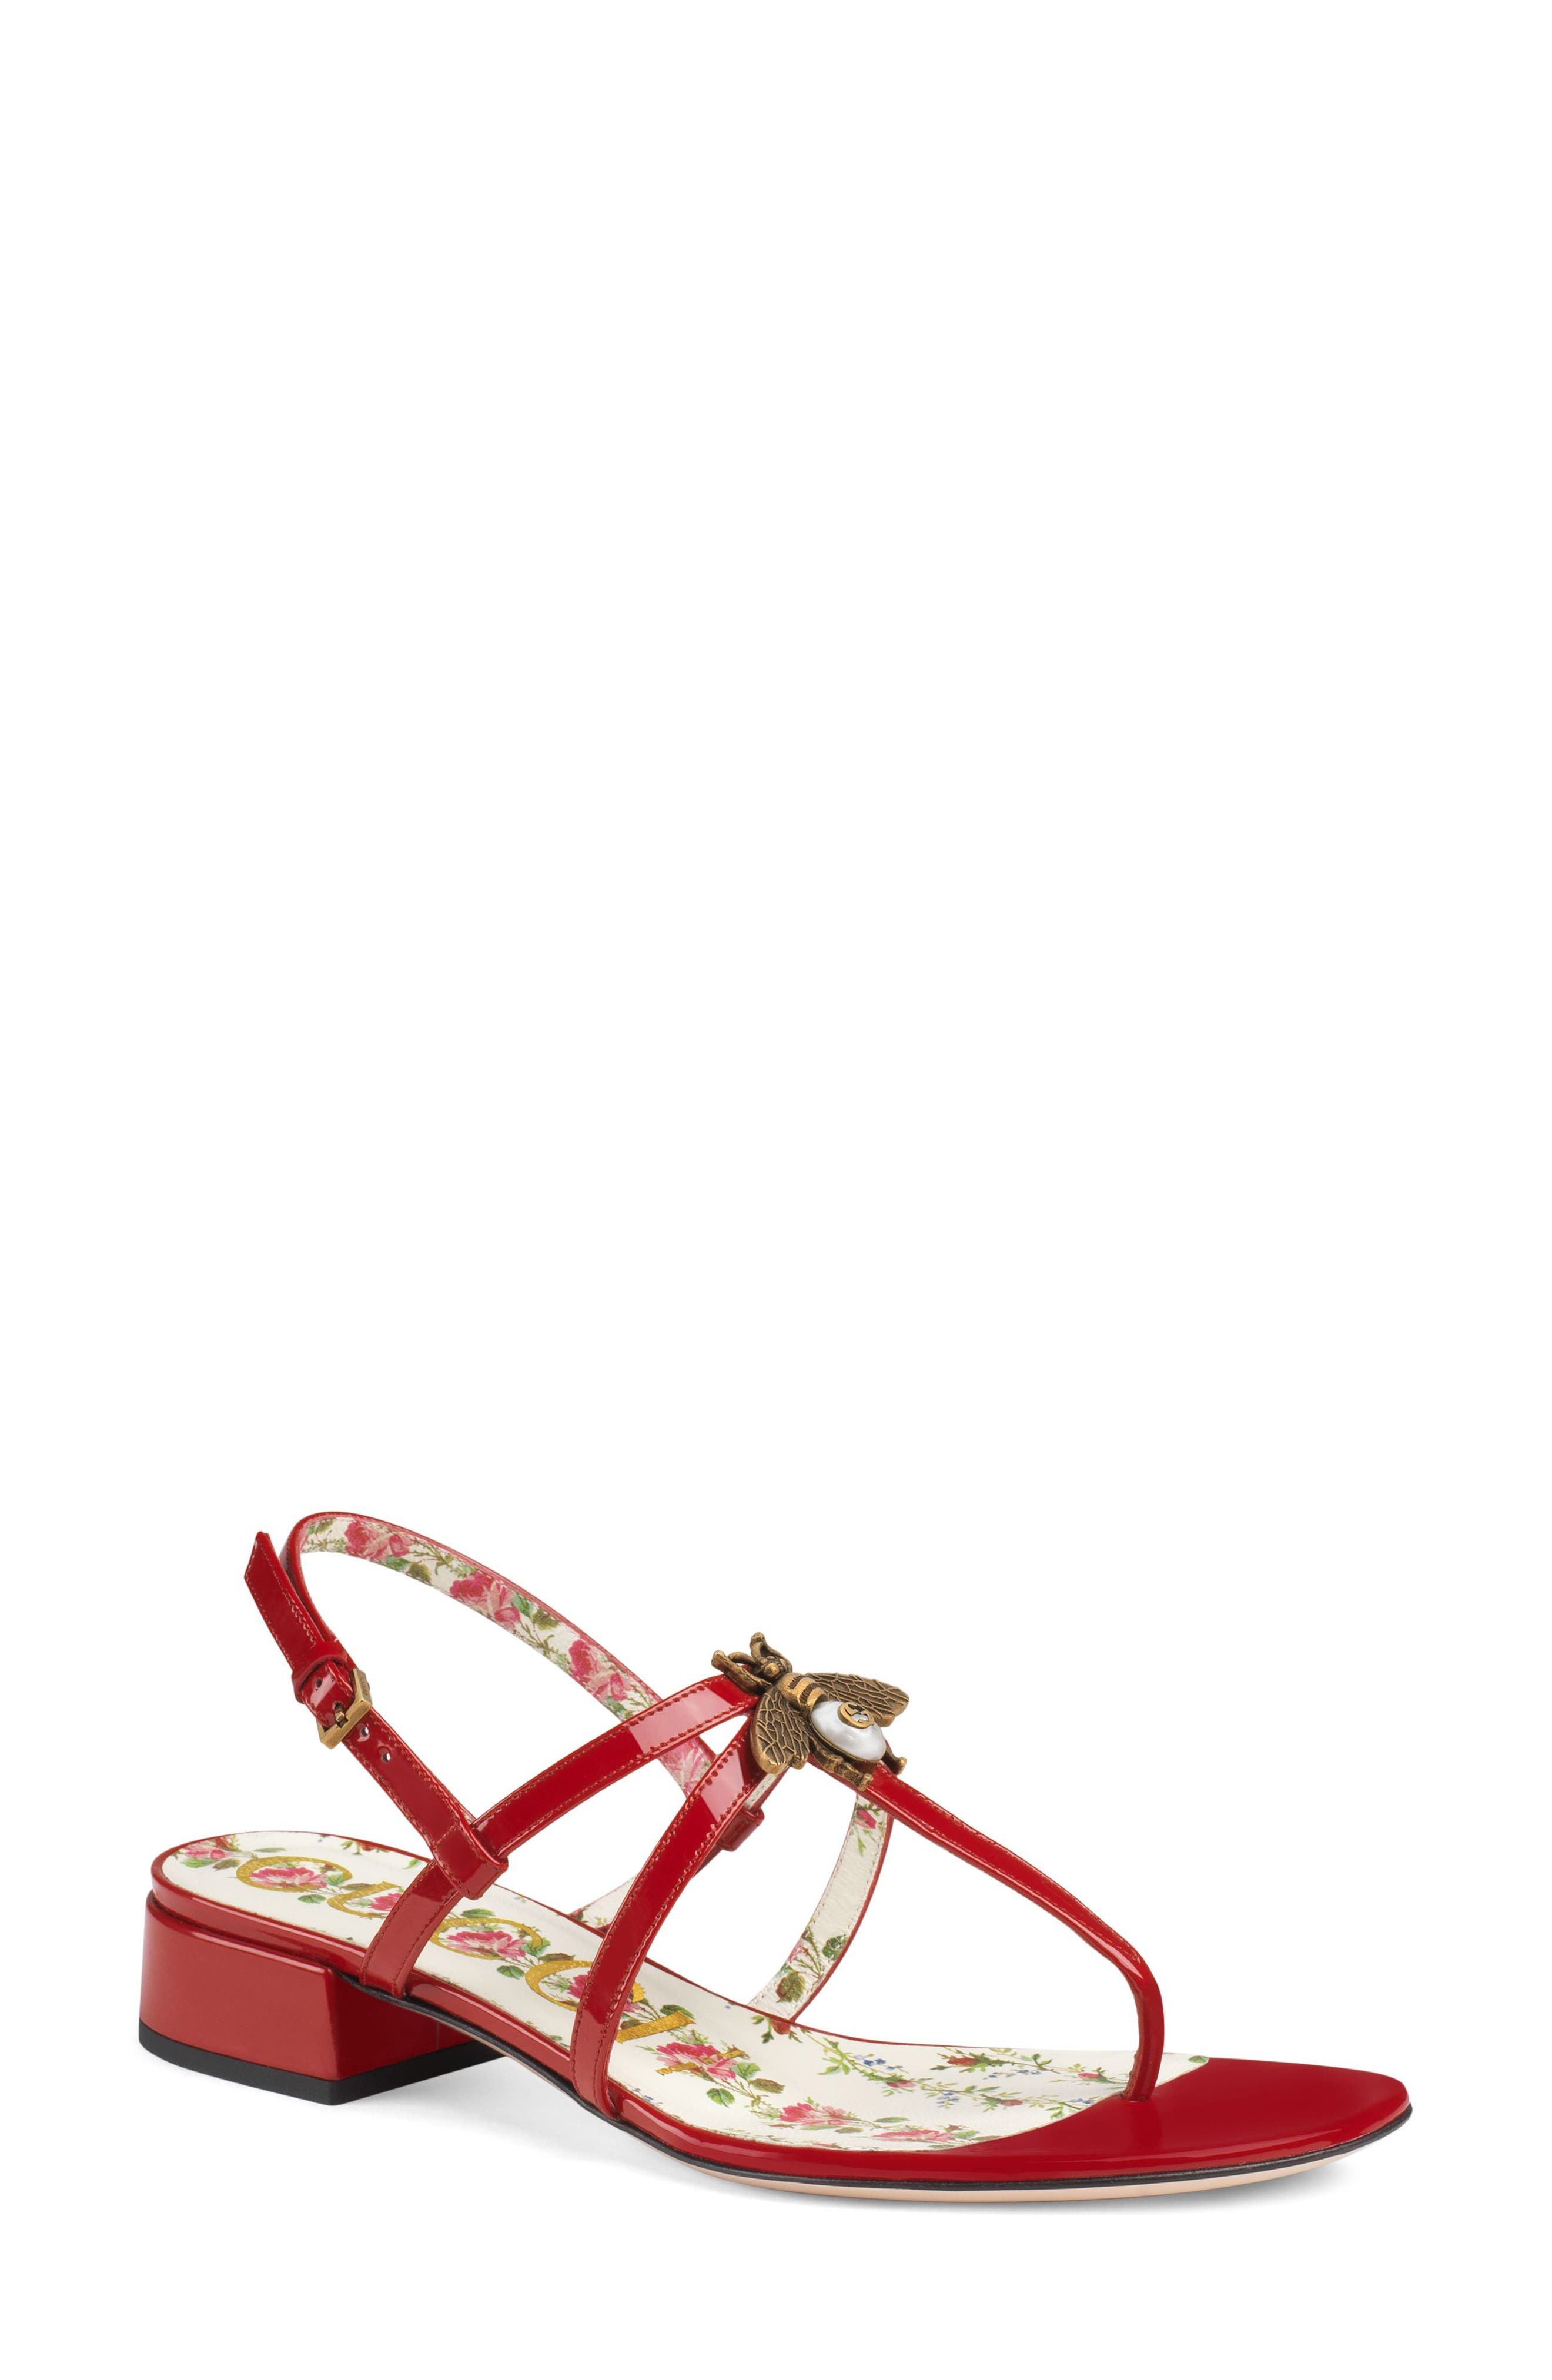 GUCCI, Bee Thong Sandal, Main thumbnail 1, color, HIBISCUS RED